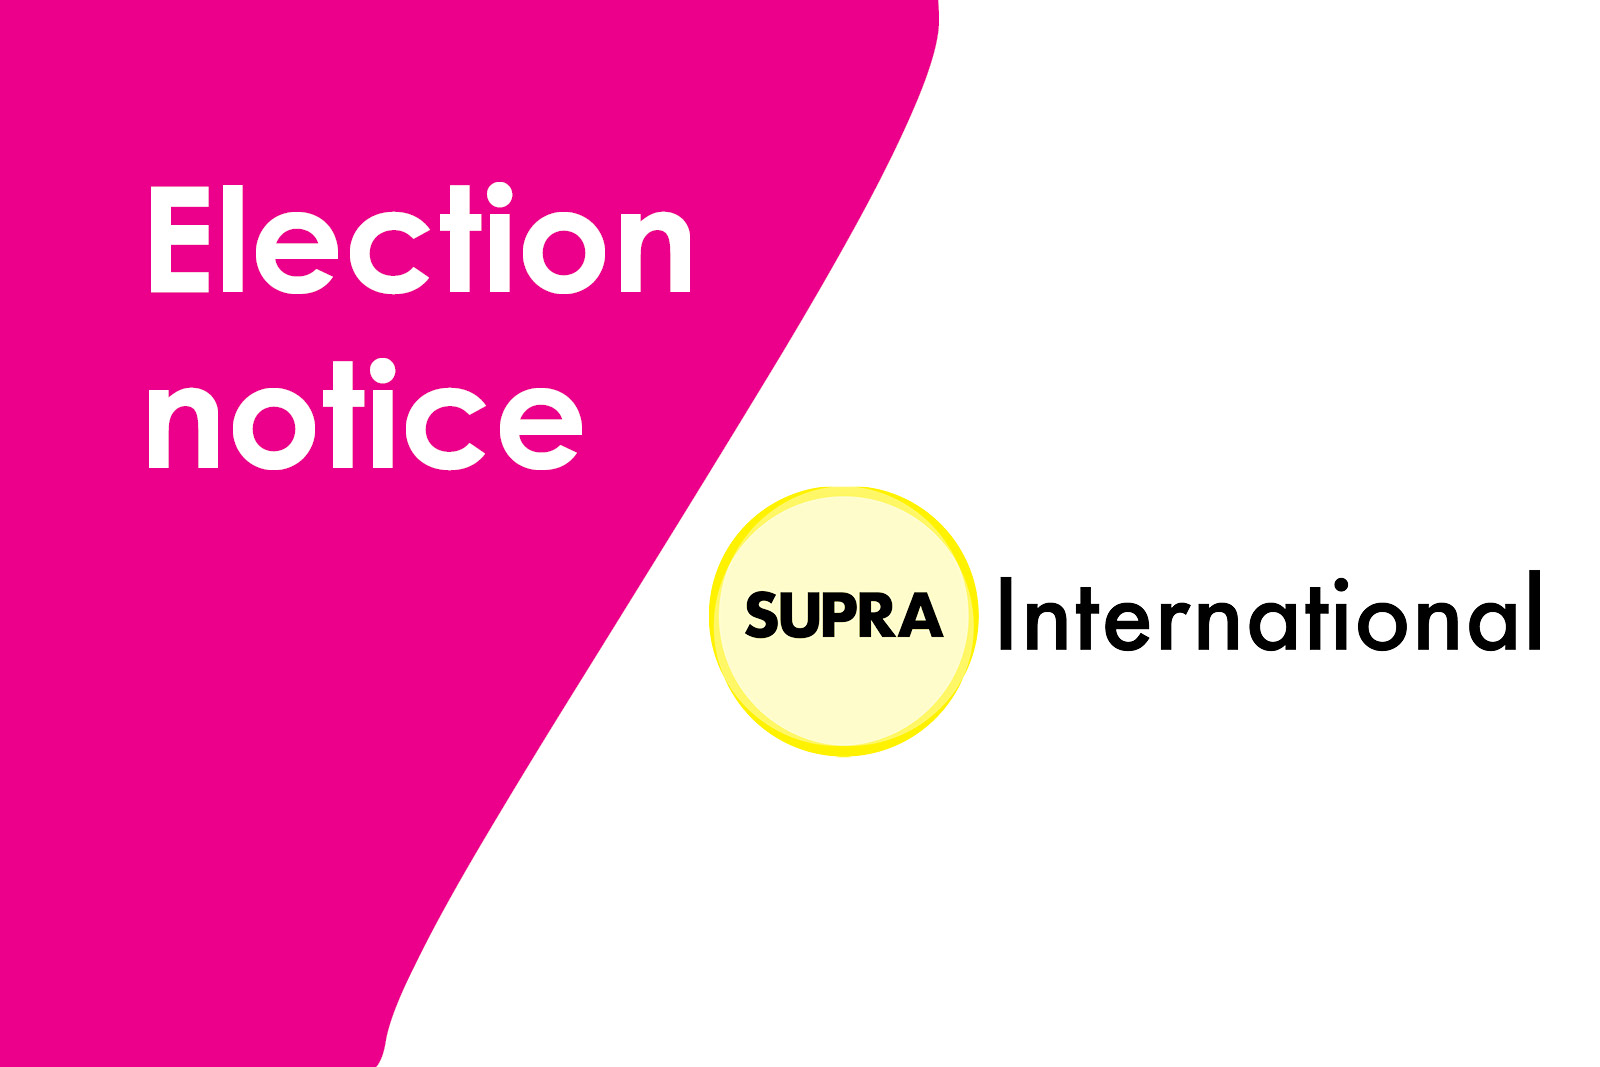 Election notice, logo for SUPRA International Equity group